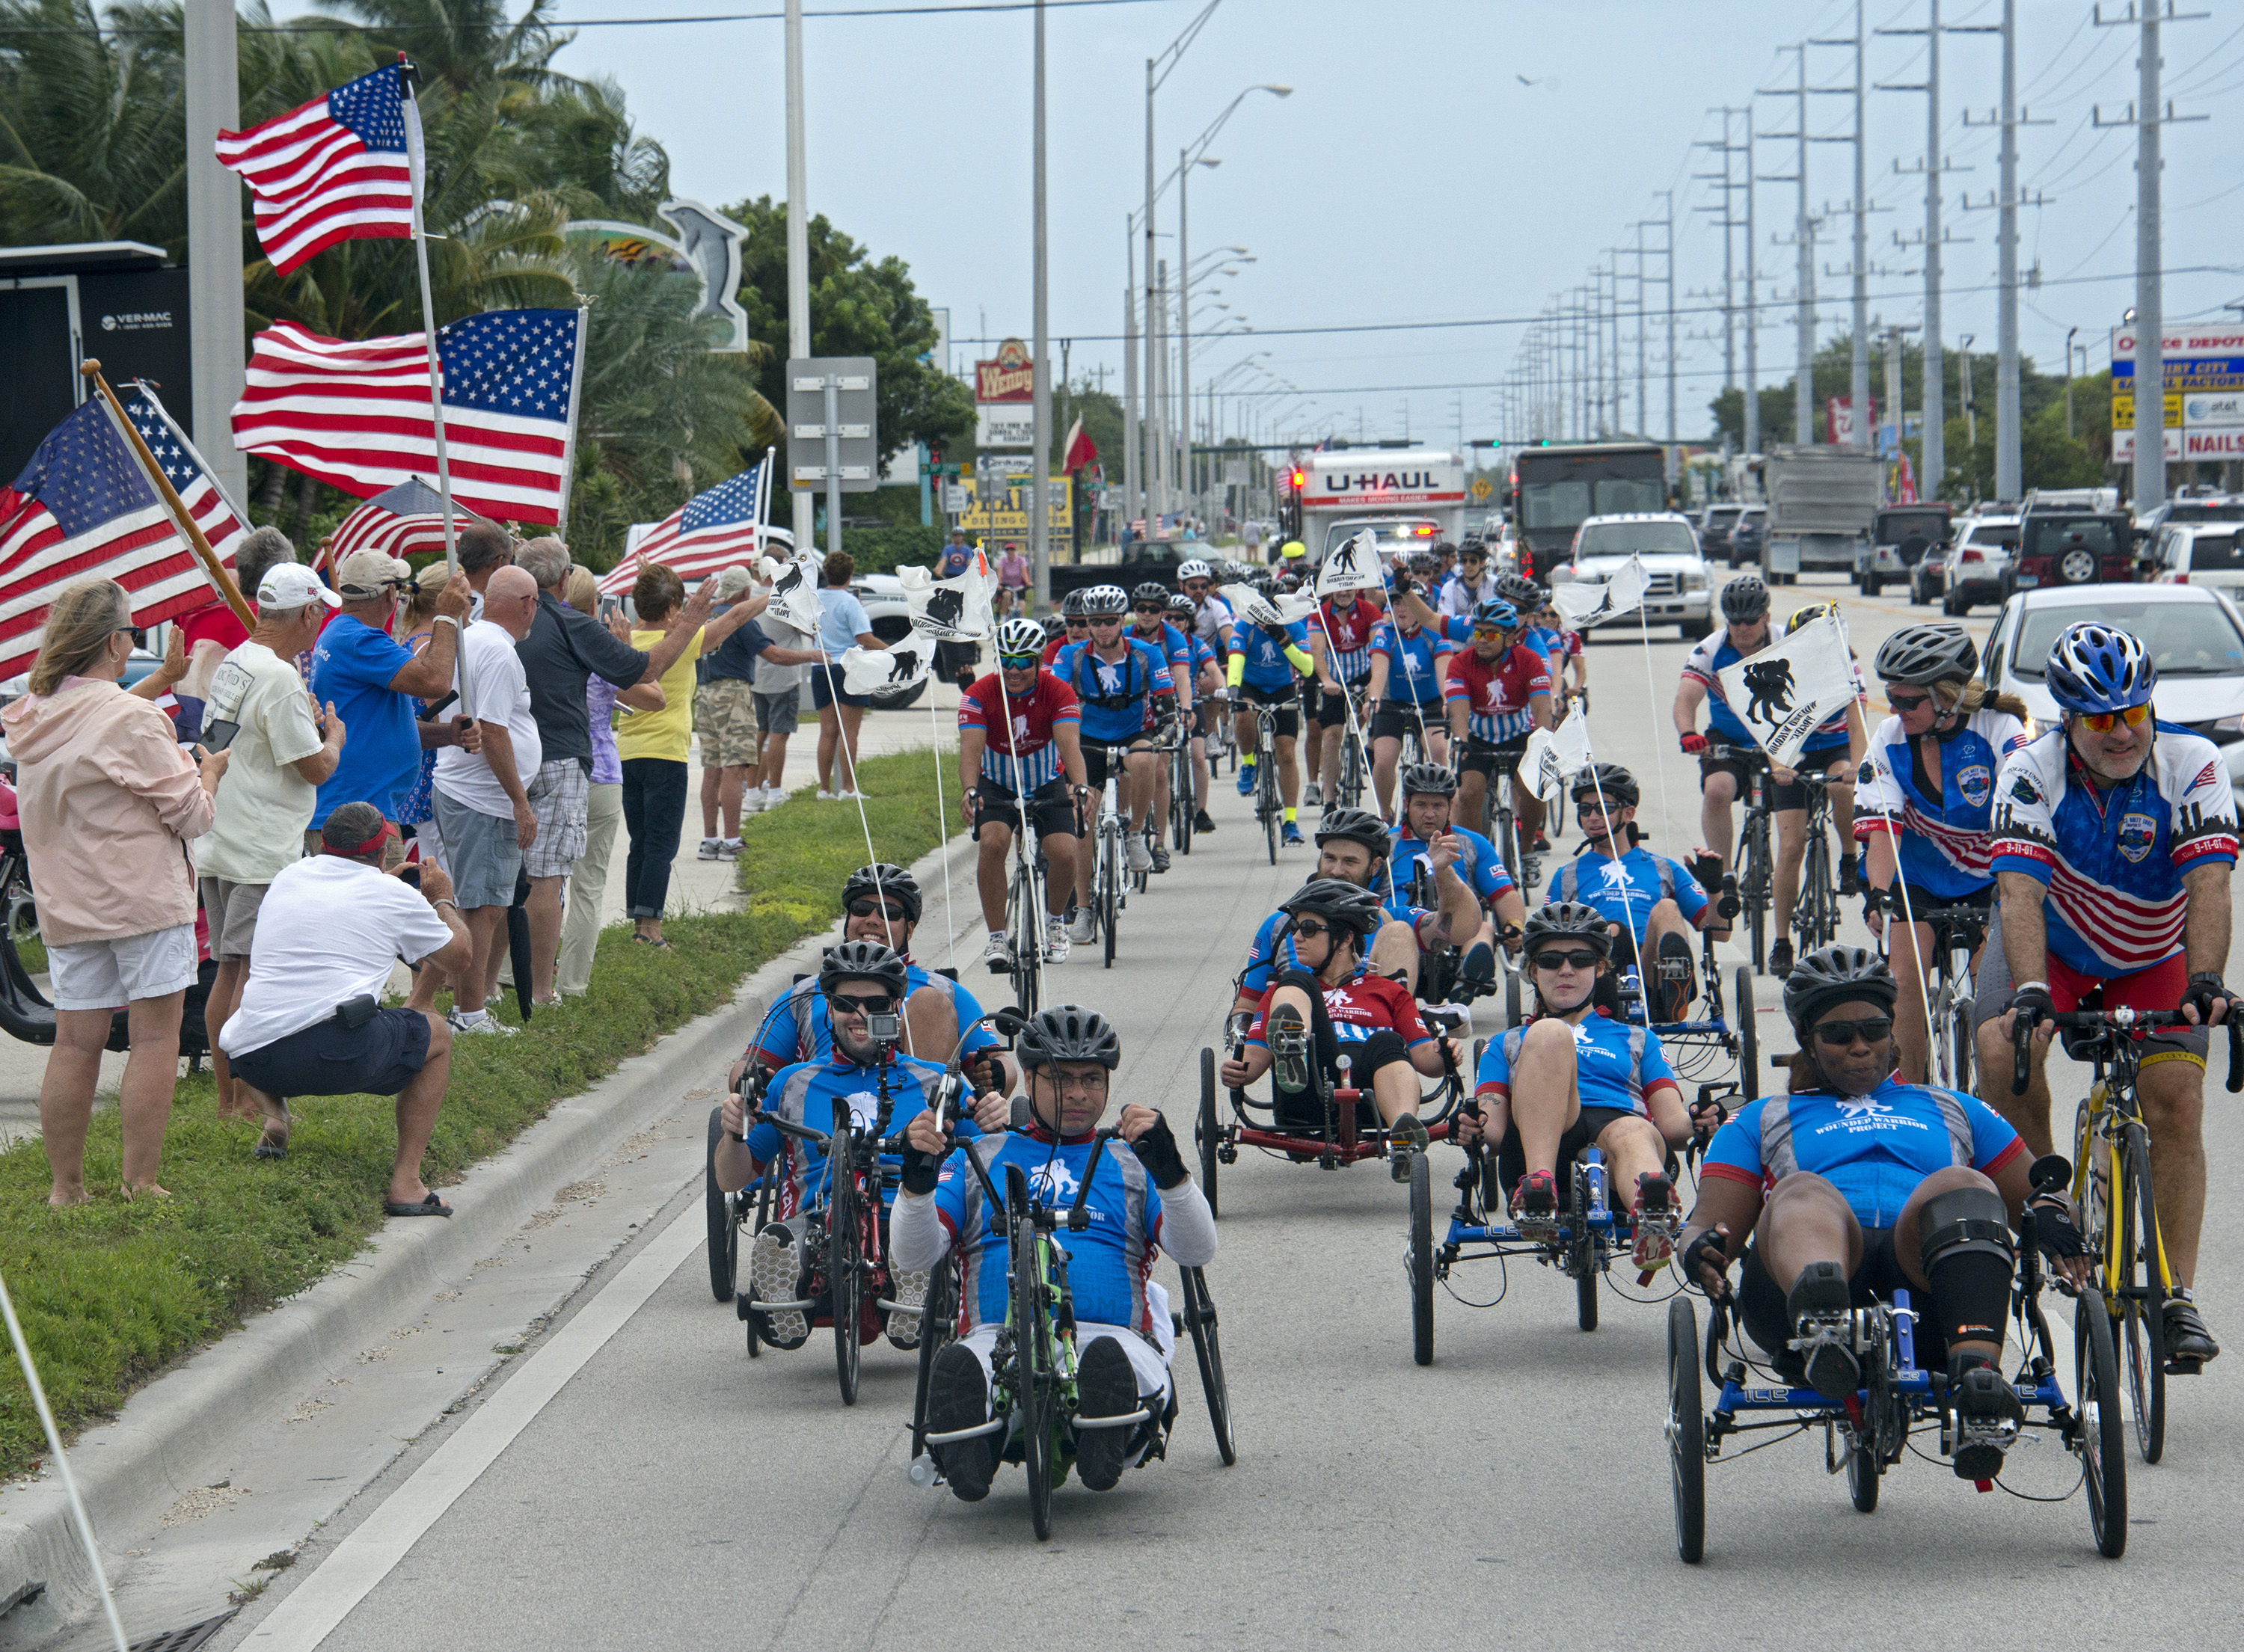 WWP survey shows some improvements for injured veterans